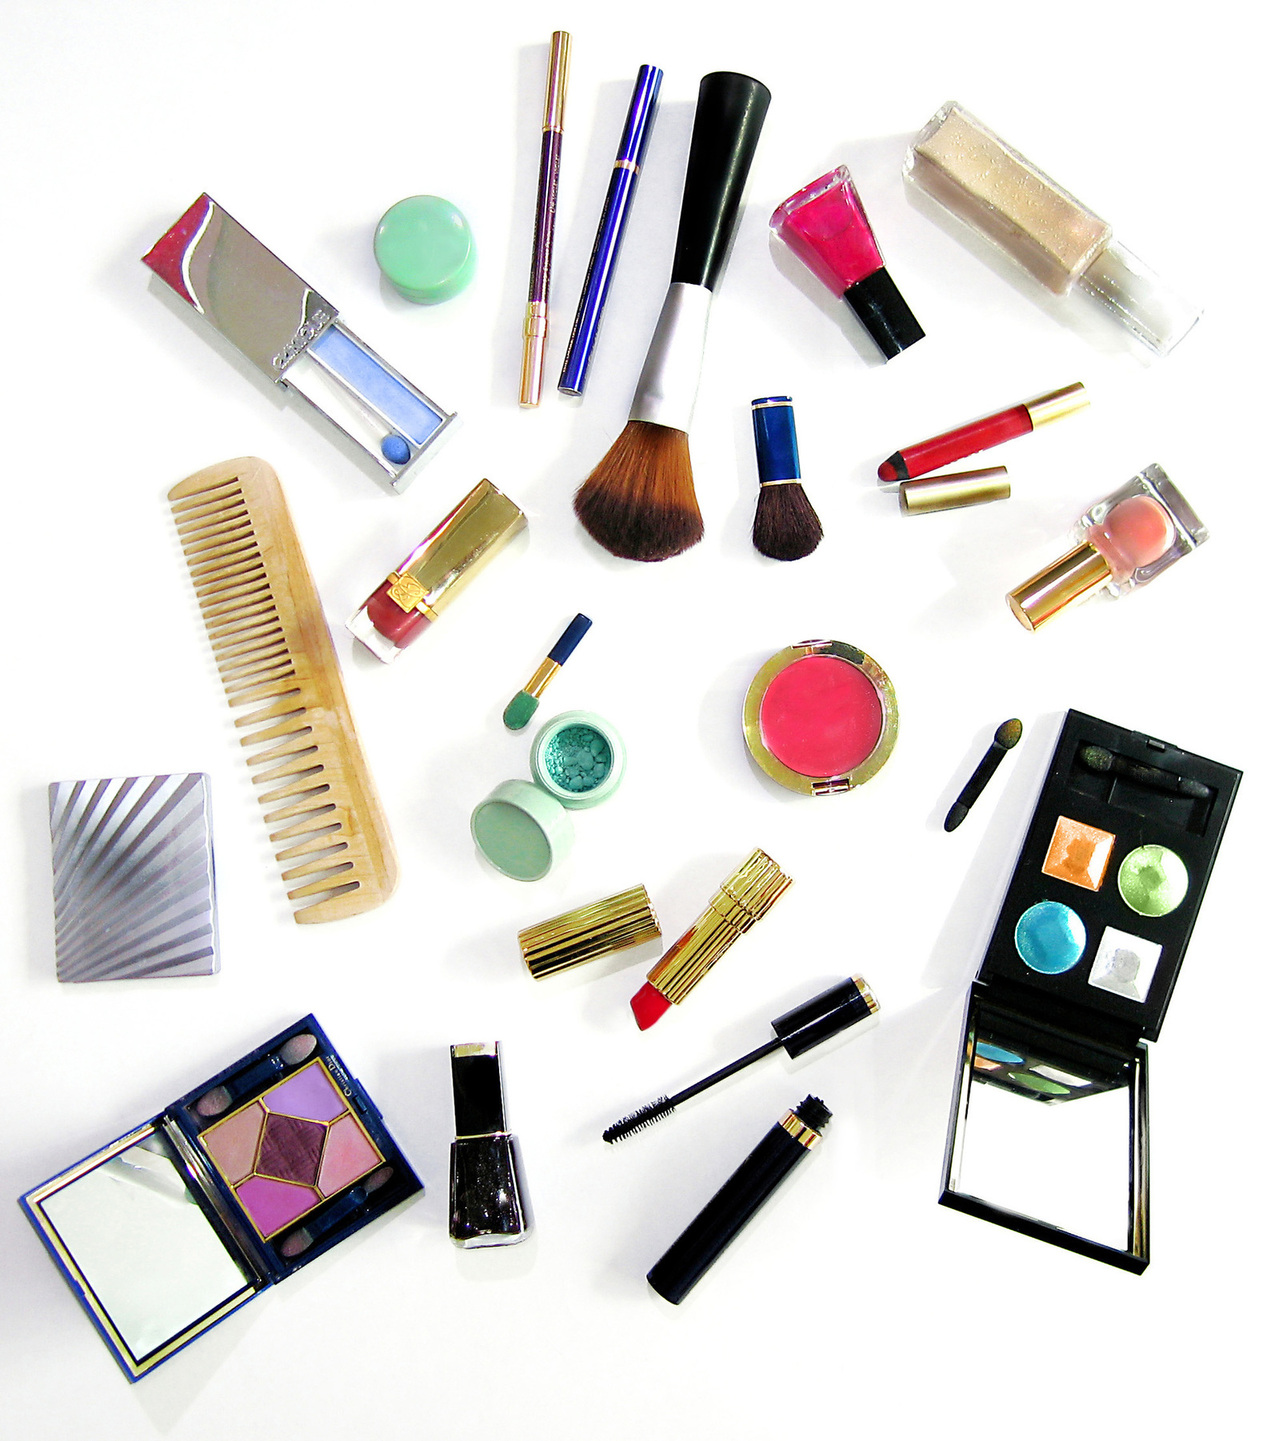 Makeup items scattered